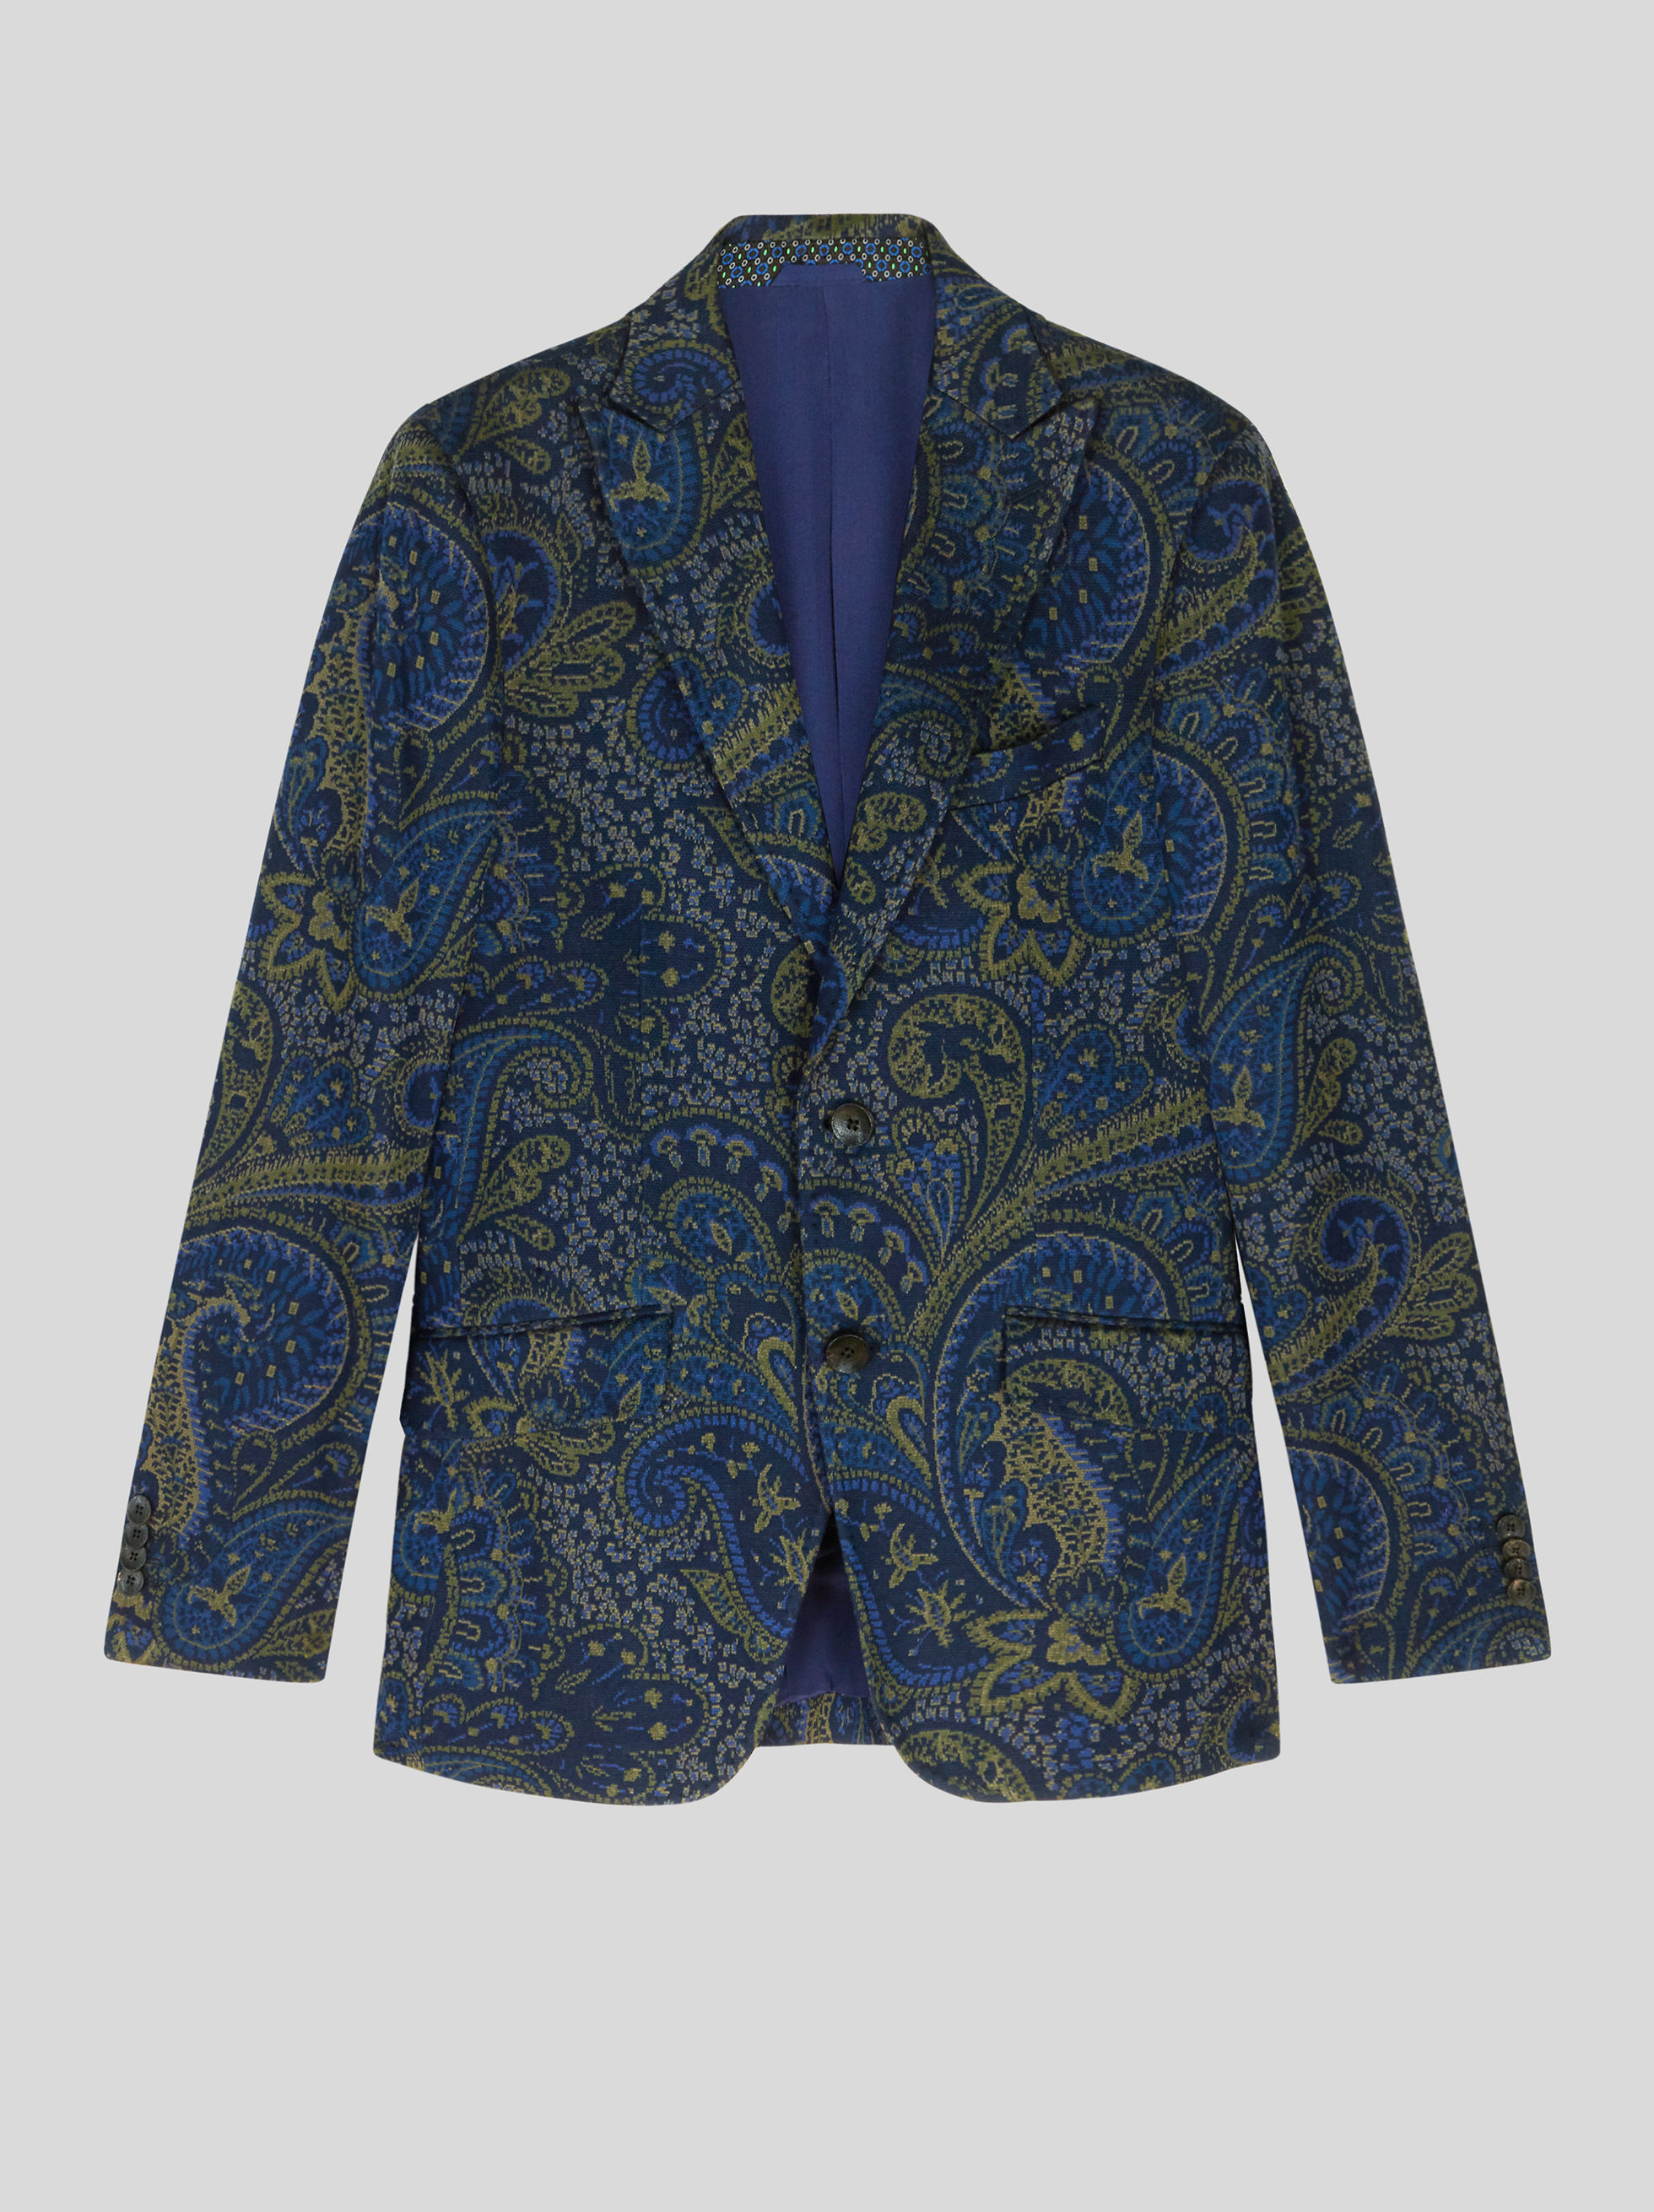 JERSEY JACQUARD JACKET WITH PAISLEY PATTERN